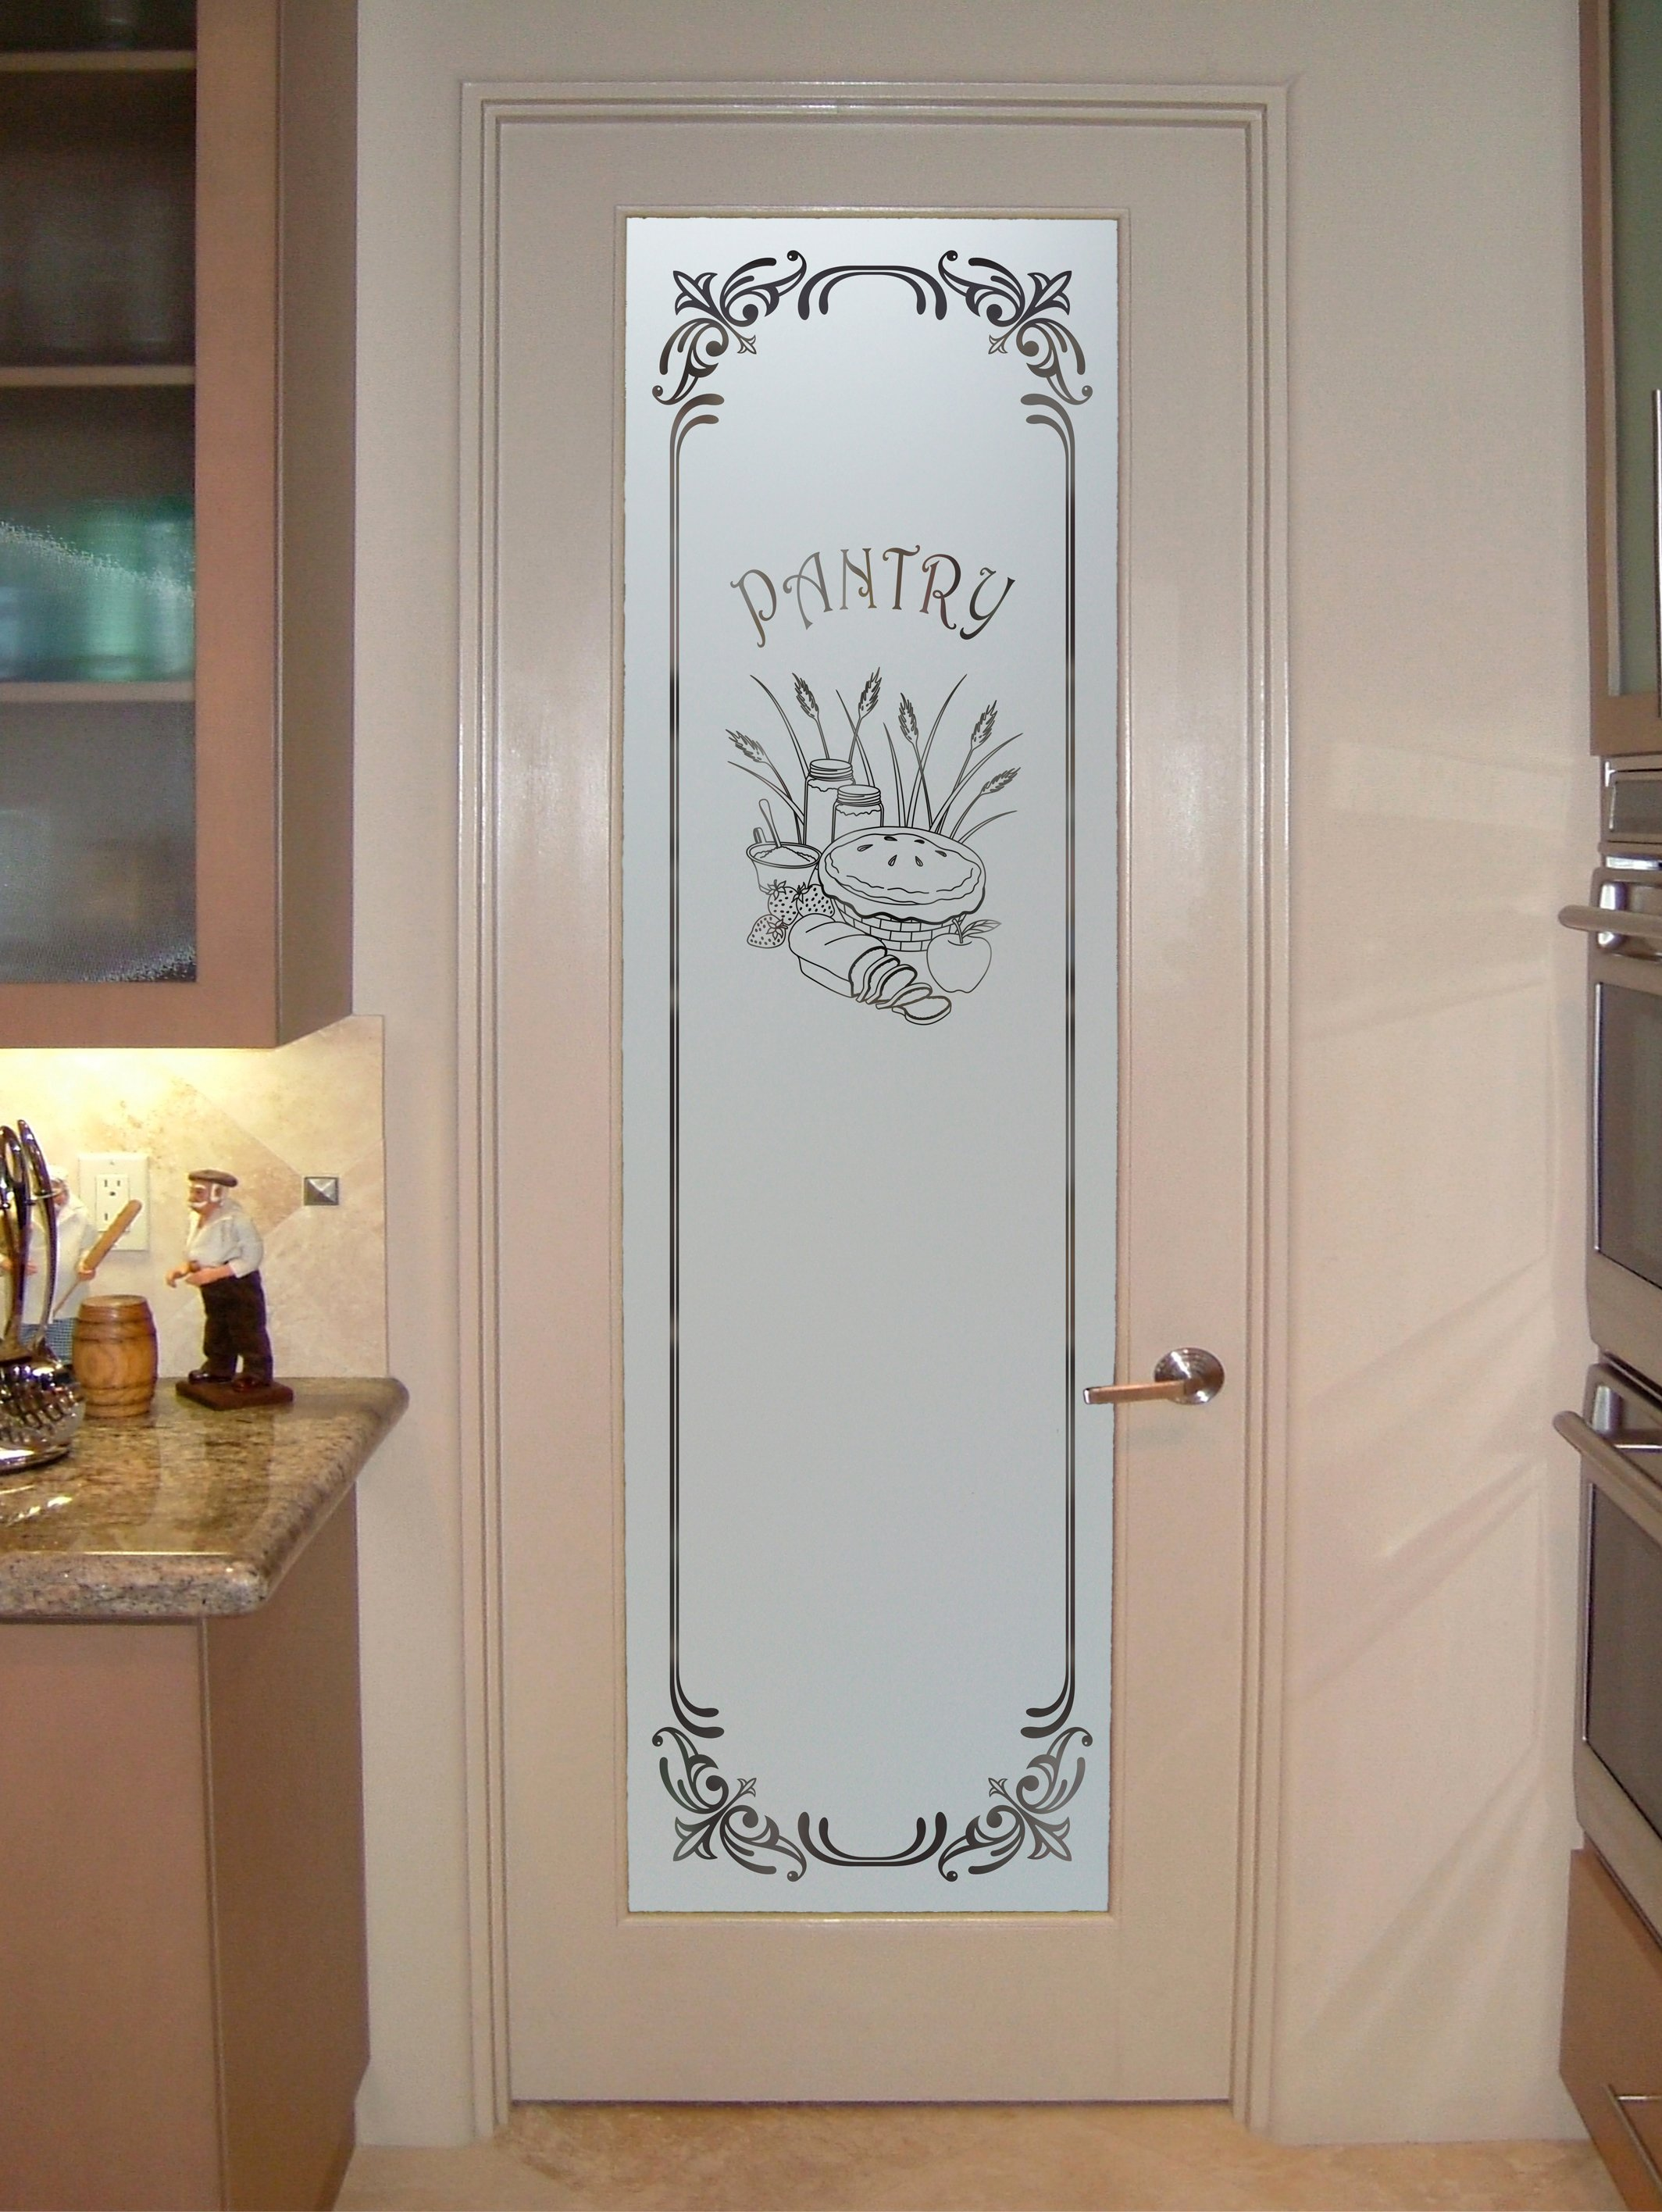 Pantry doors at lowespantry glass sans soucie art glass for Kitchen cabinets lowes with mirror art wall